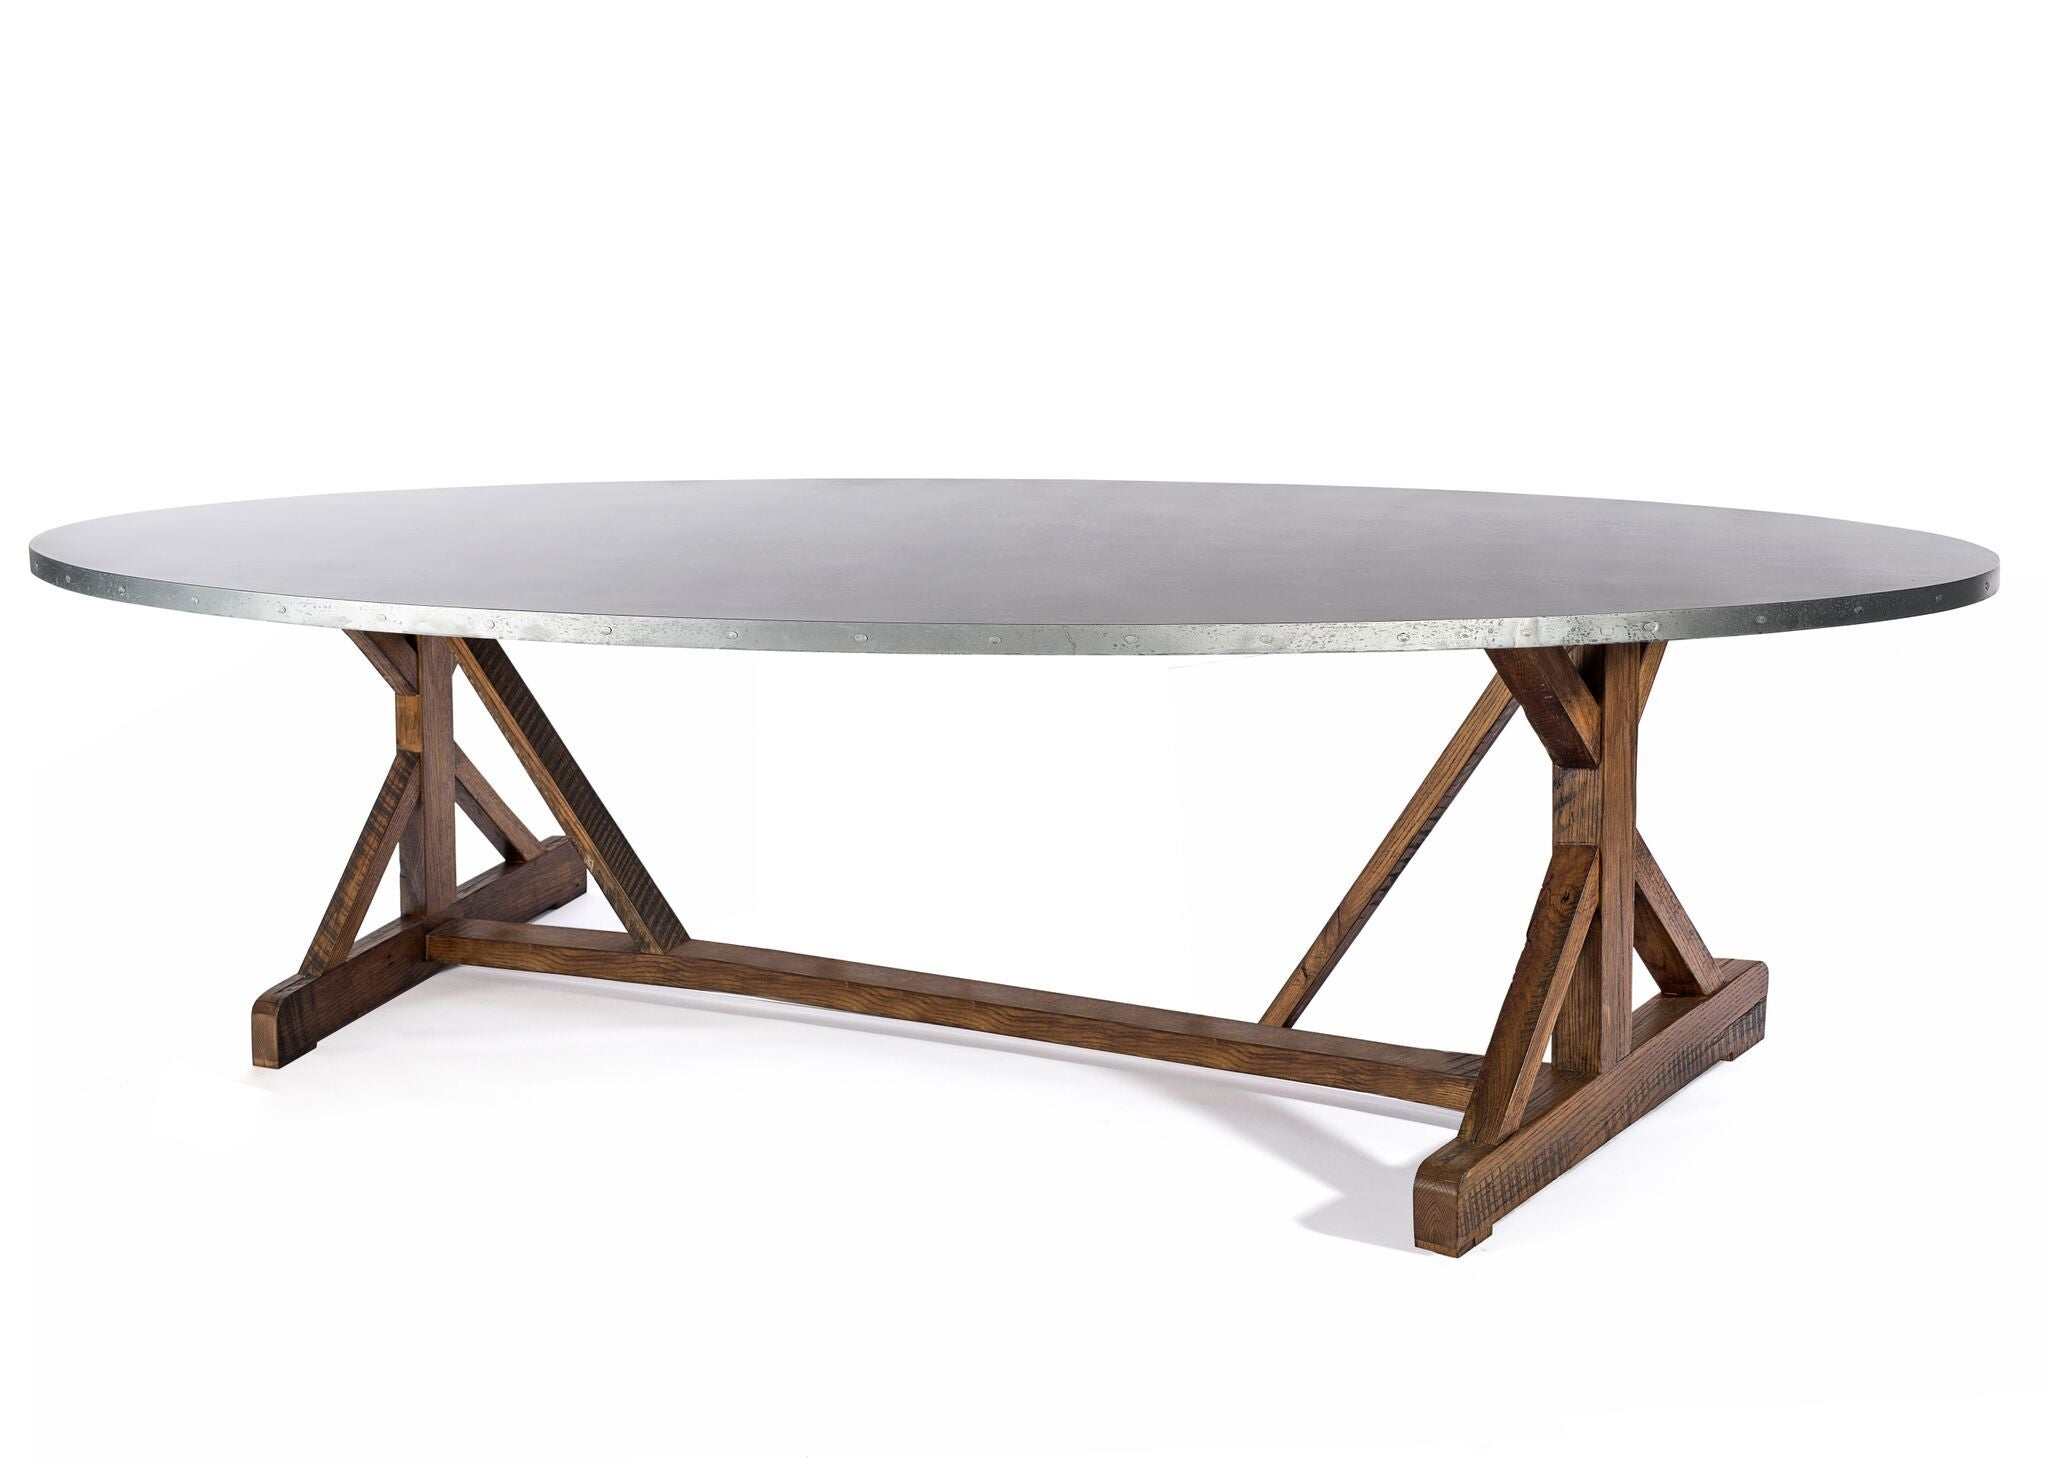 Zinc Oval Tables | French Trestle | CLASSIC | Natural Black Walnut | CUSTOM SIZE L 53 W 30 H 30 |